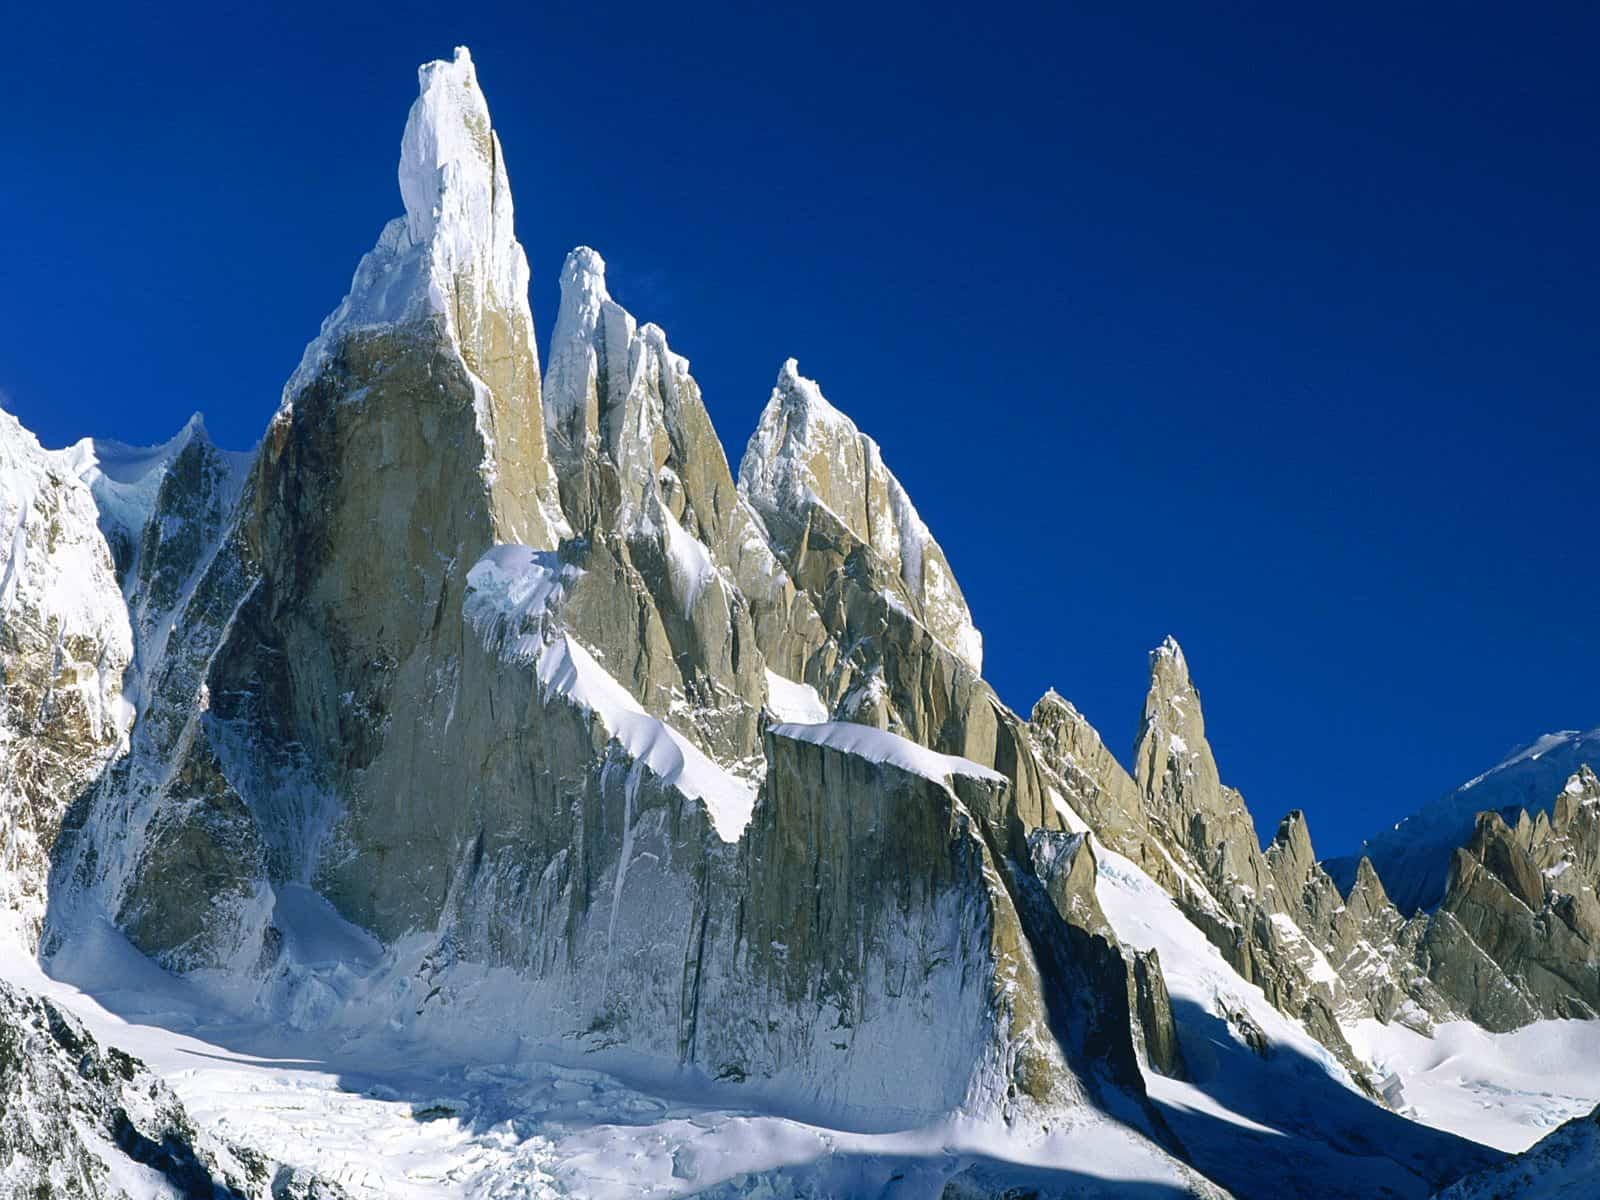 Best Mountains in the World: Cerro Torre in Los Glaciares National Park, Argentina